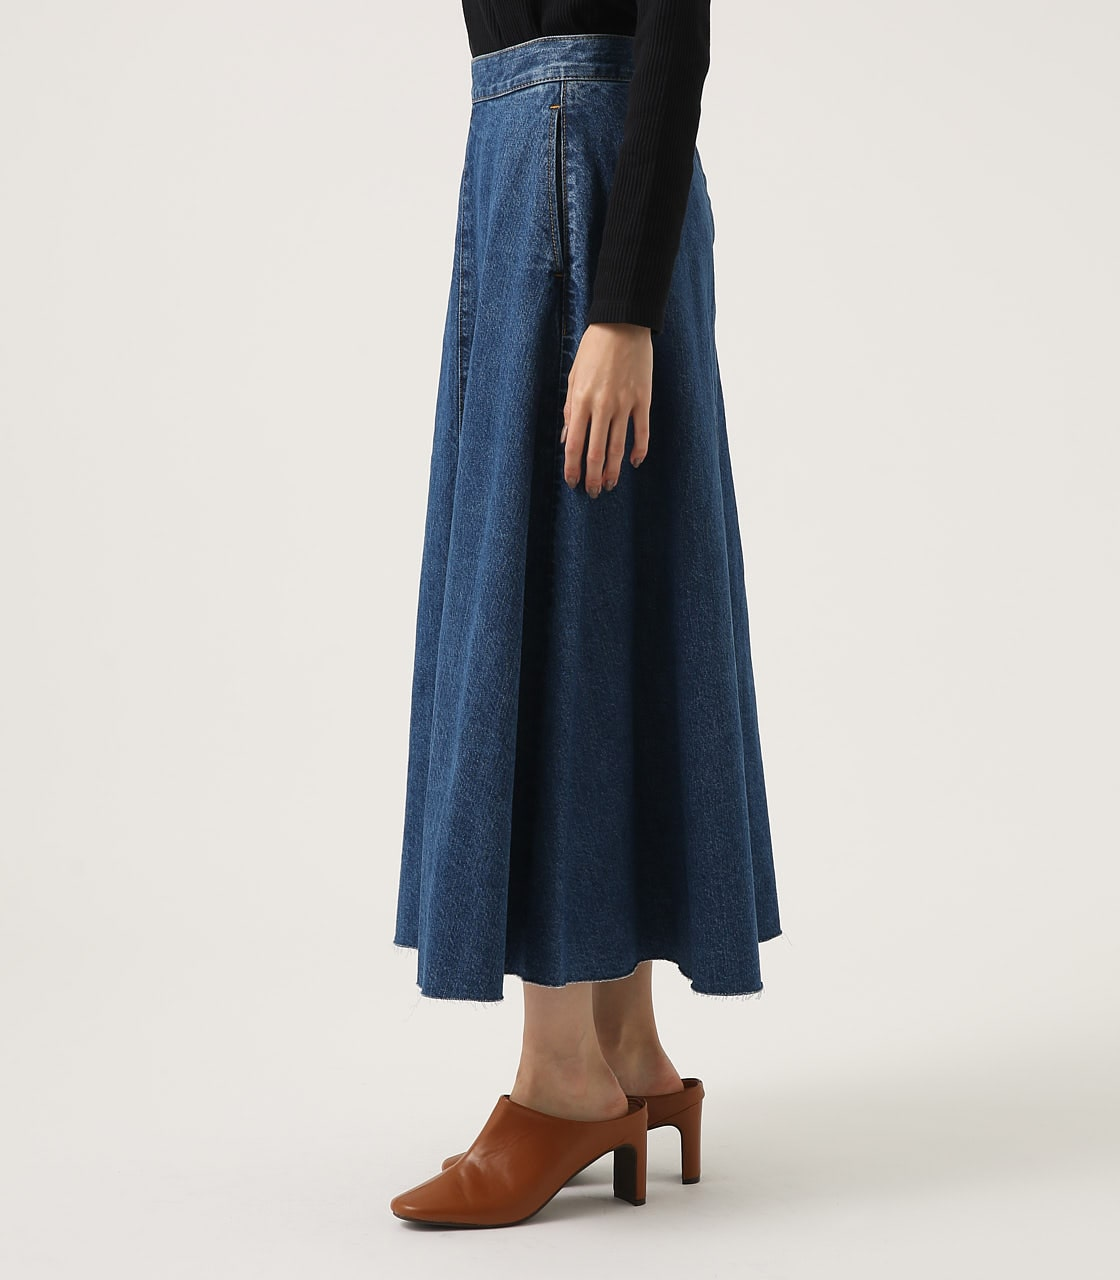 CUT OFF FLARE DENIM LONG SKIRT 詳細画像 BLU 6